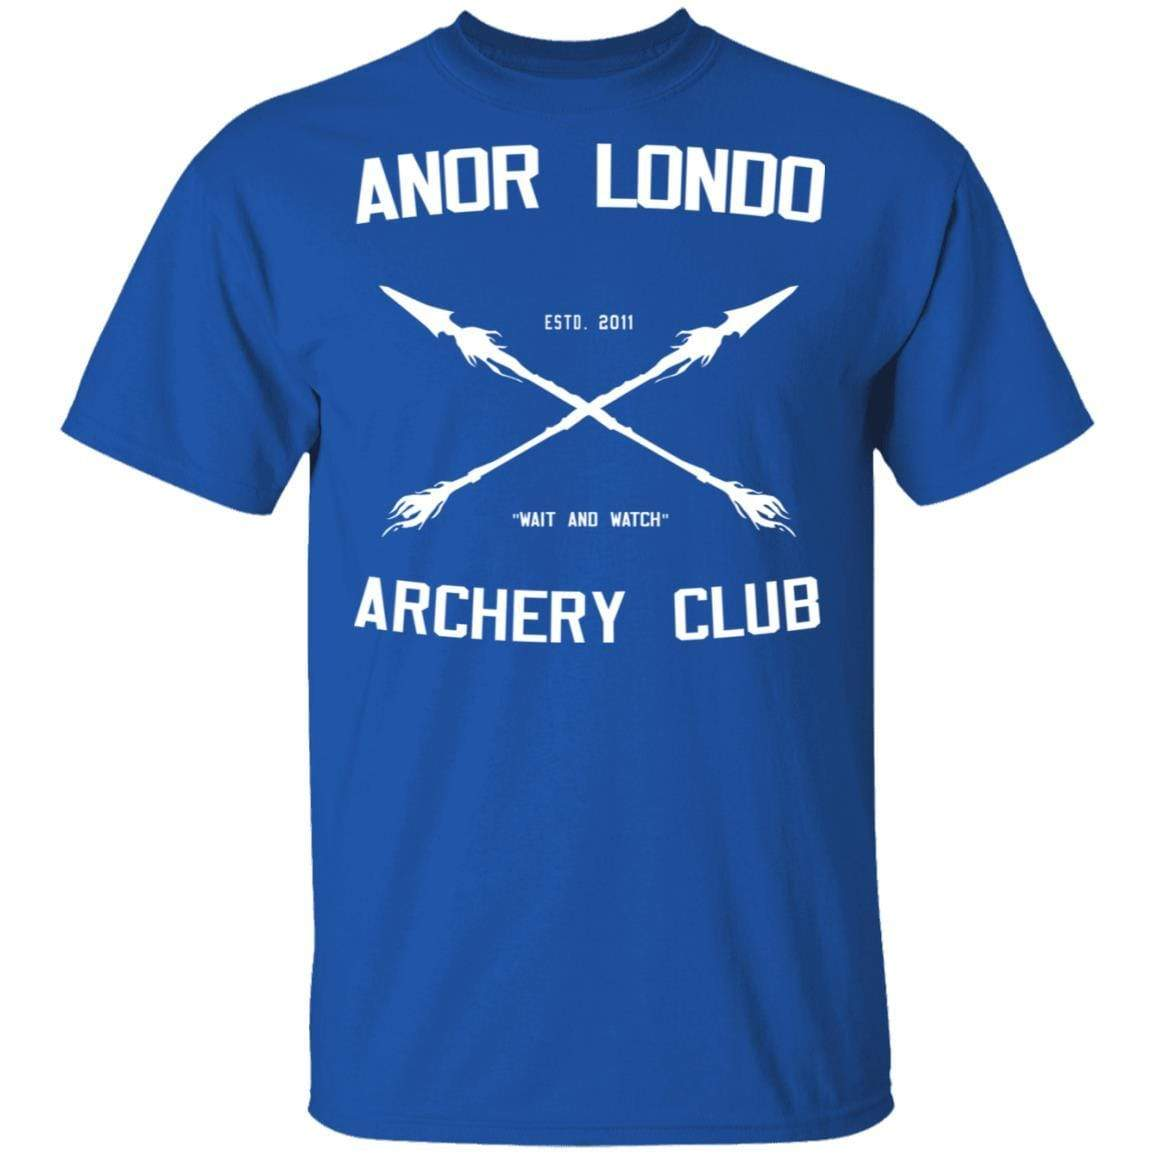 Anor Londo Archery Club 2011 T-Shirts, Hoodies 1049-9971-88767425-48286 - Tee Ript